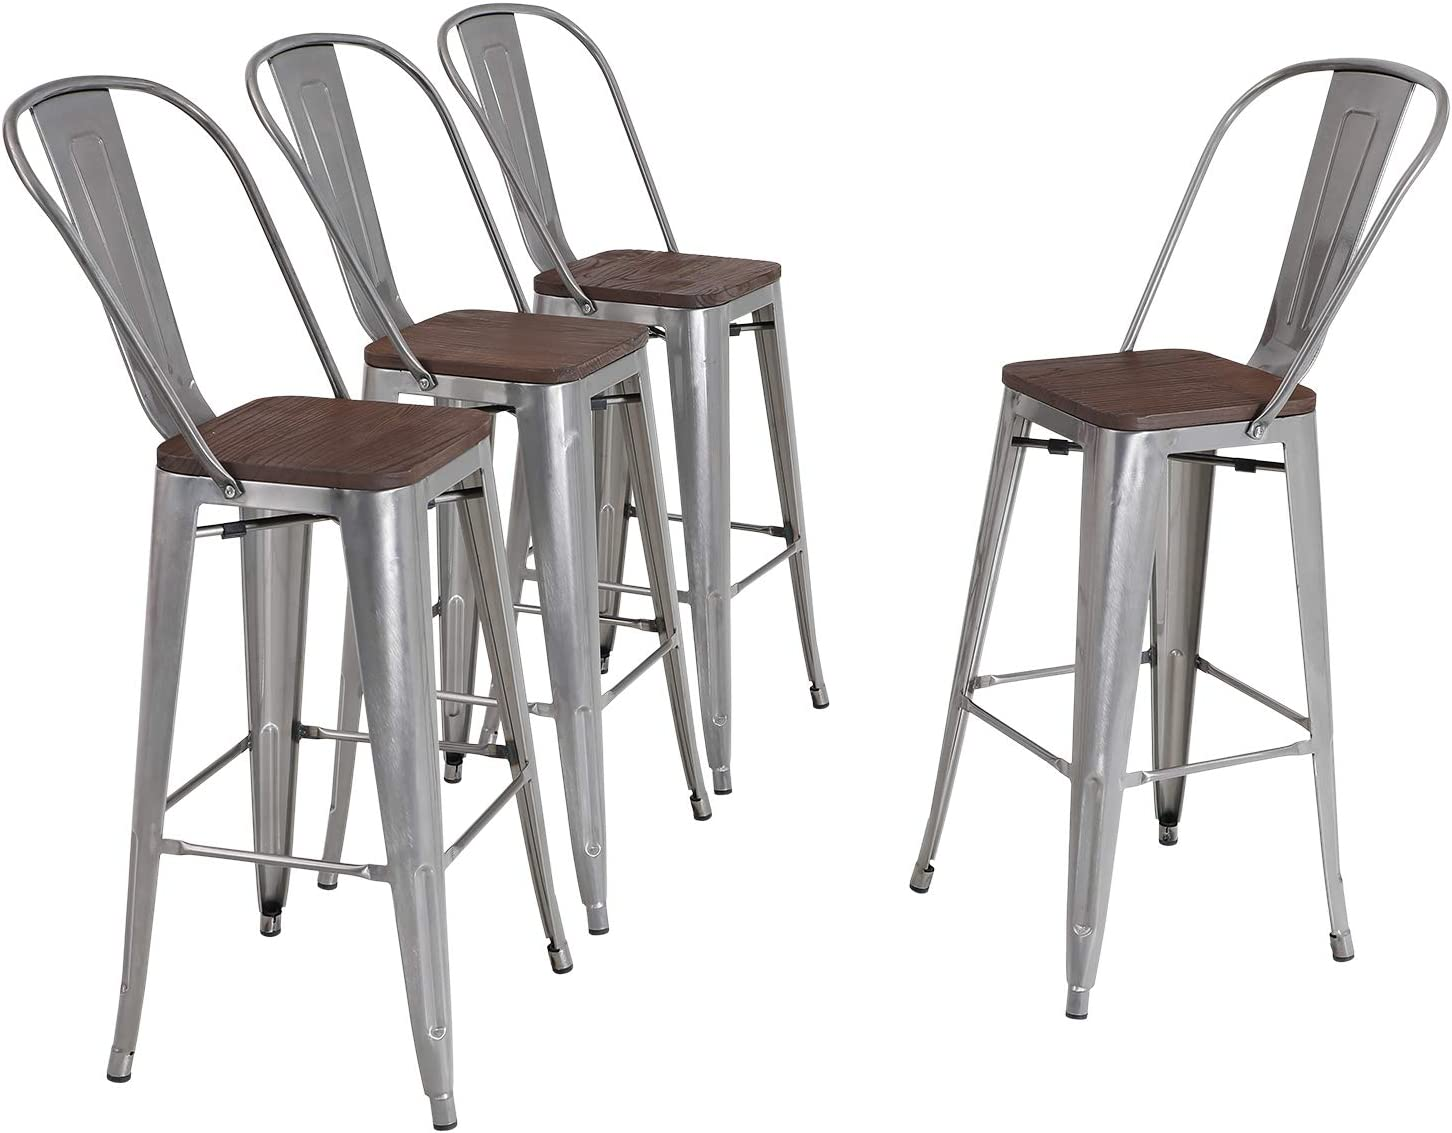 ALPHA HOME 30'' High Back Bar Stools with Wood Seat,Vintage Metal Dining Chairs Stackable Industrial Counter Stool Cafe Side Chairs, Glossy Steel